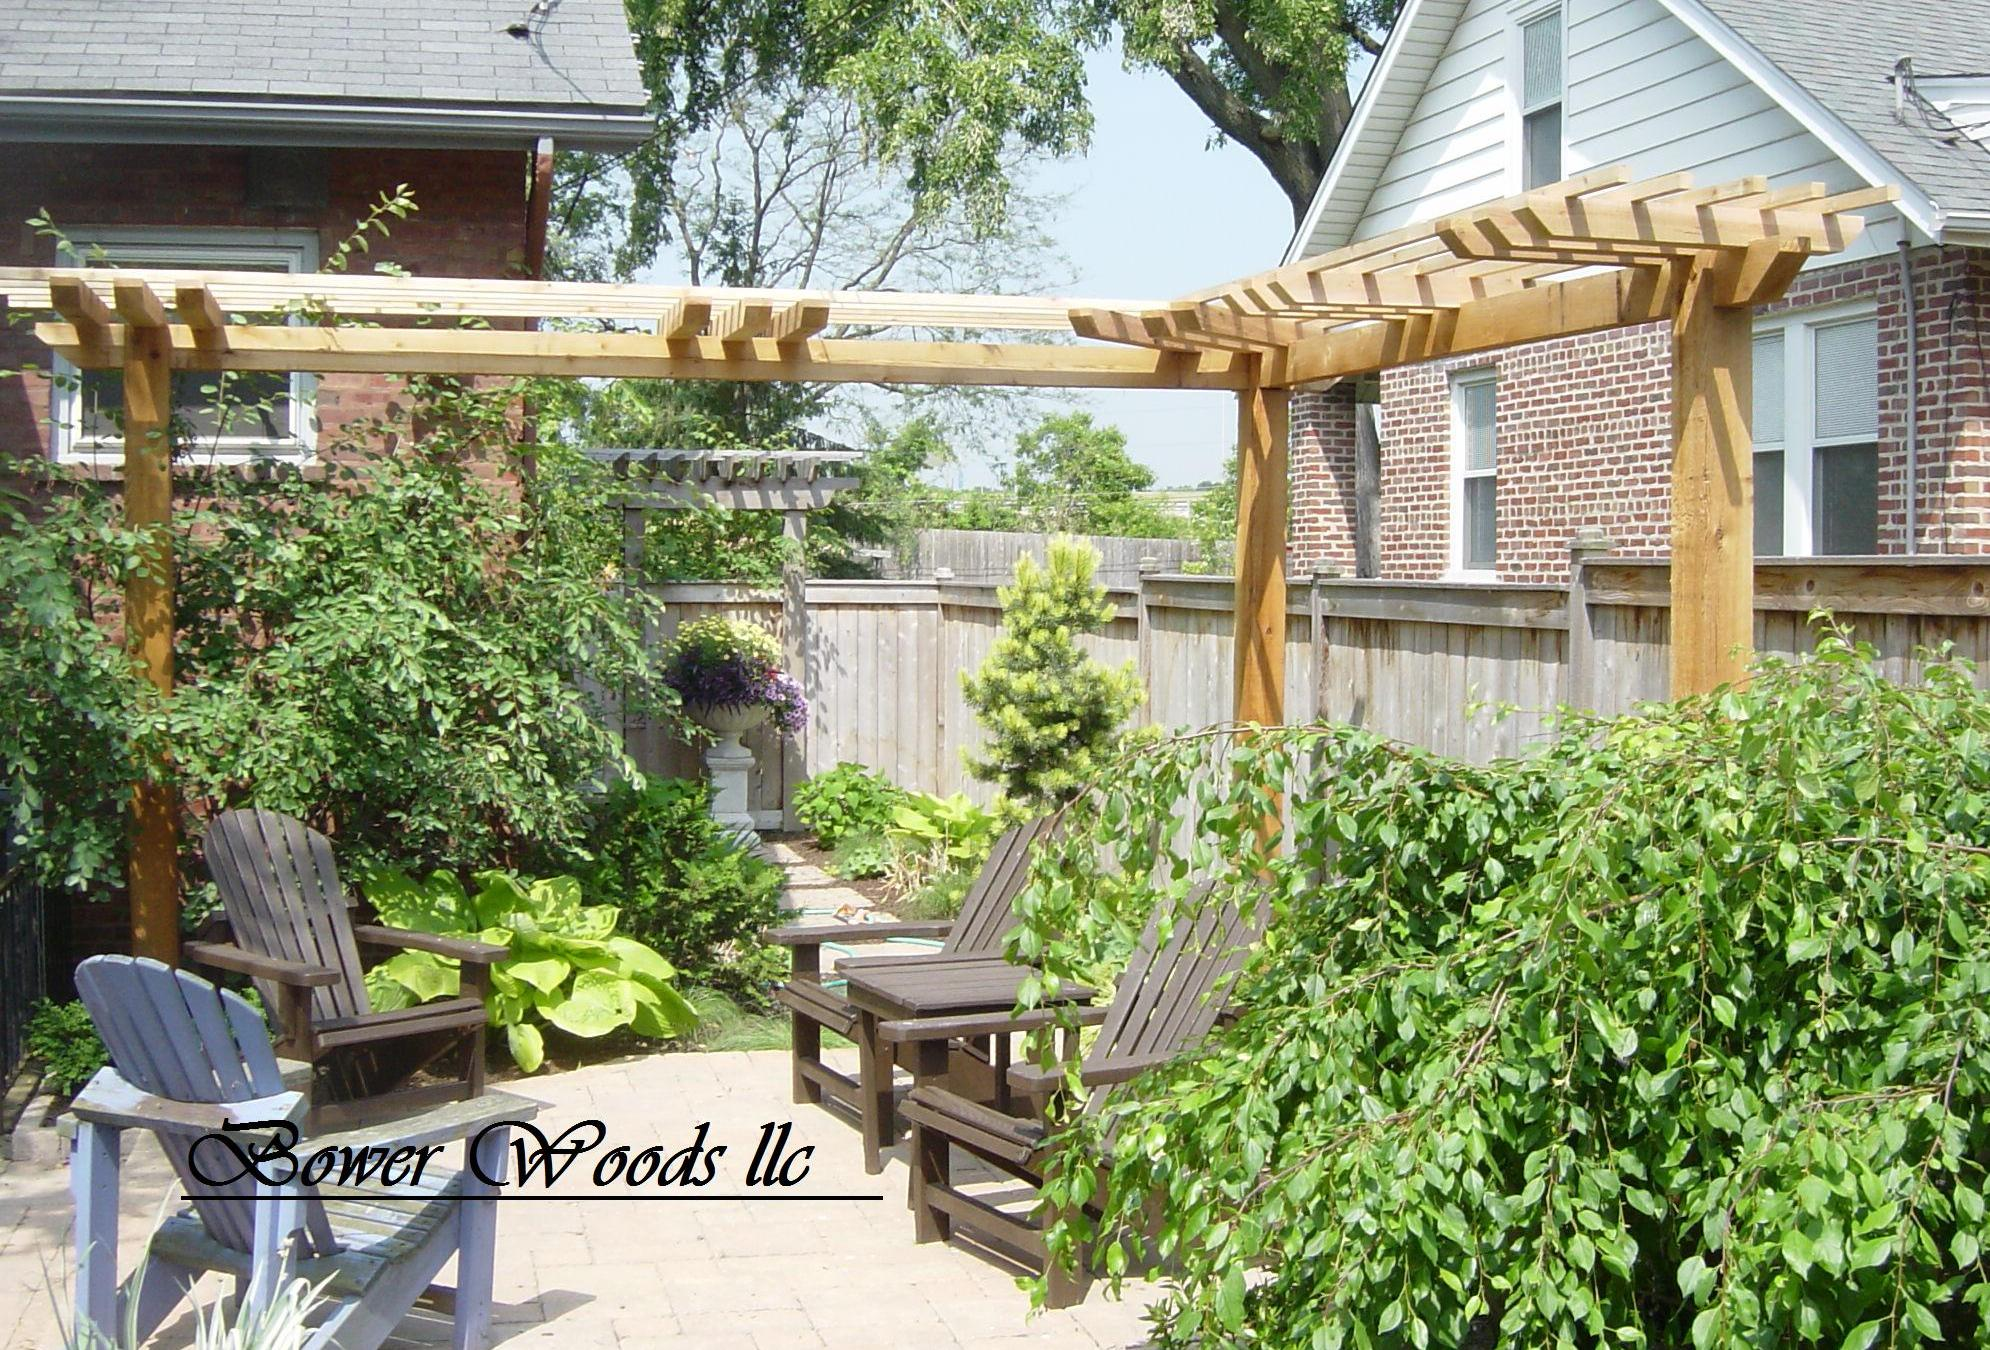 bower woods llc custom garden structures rustic pergolas